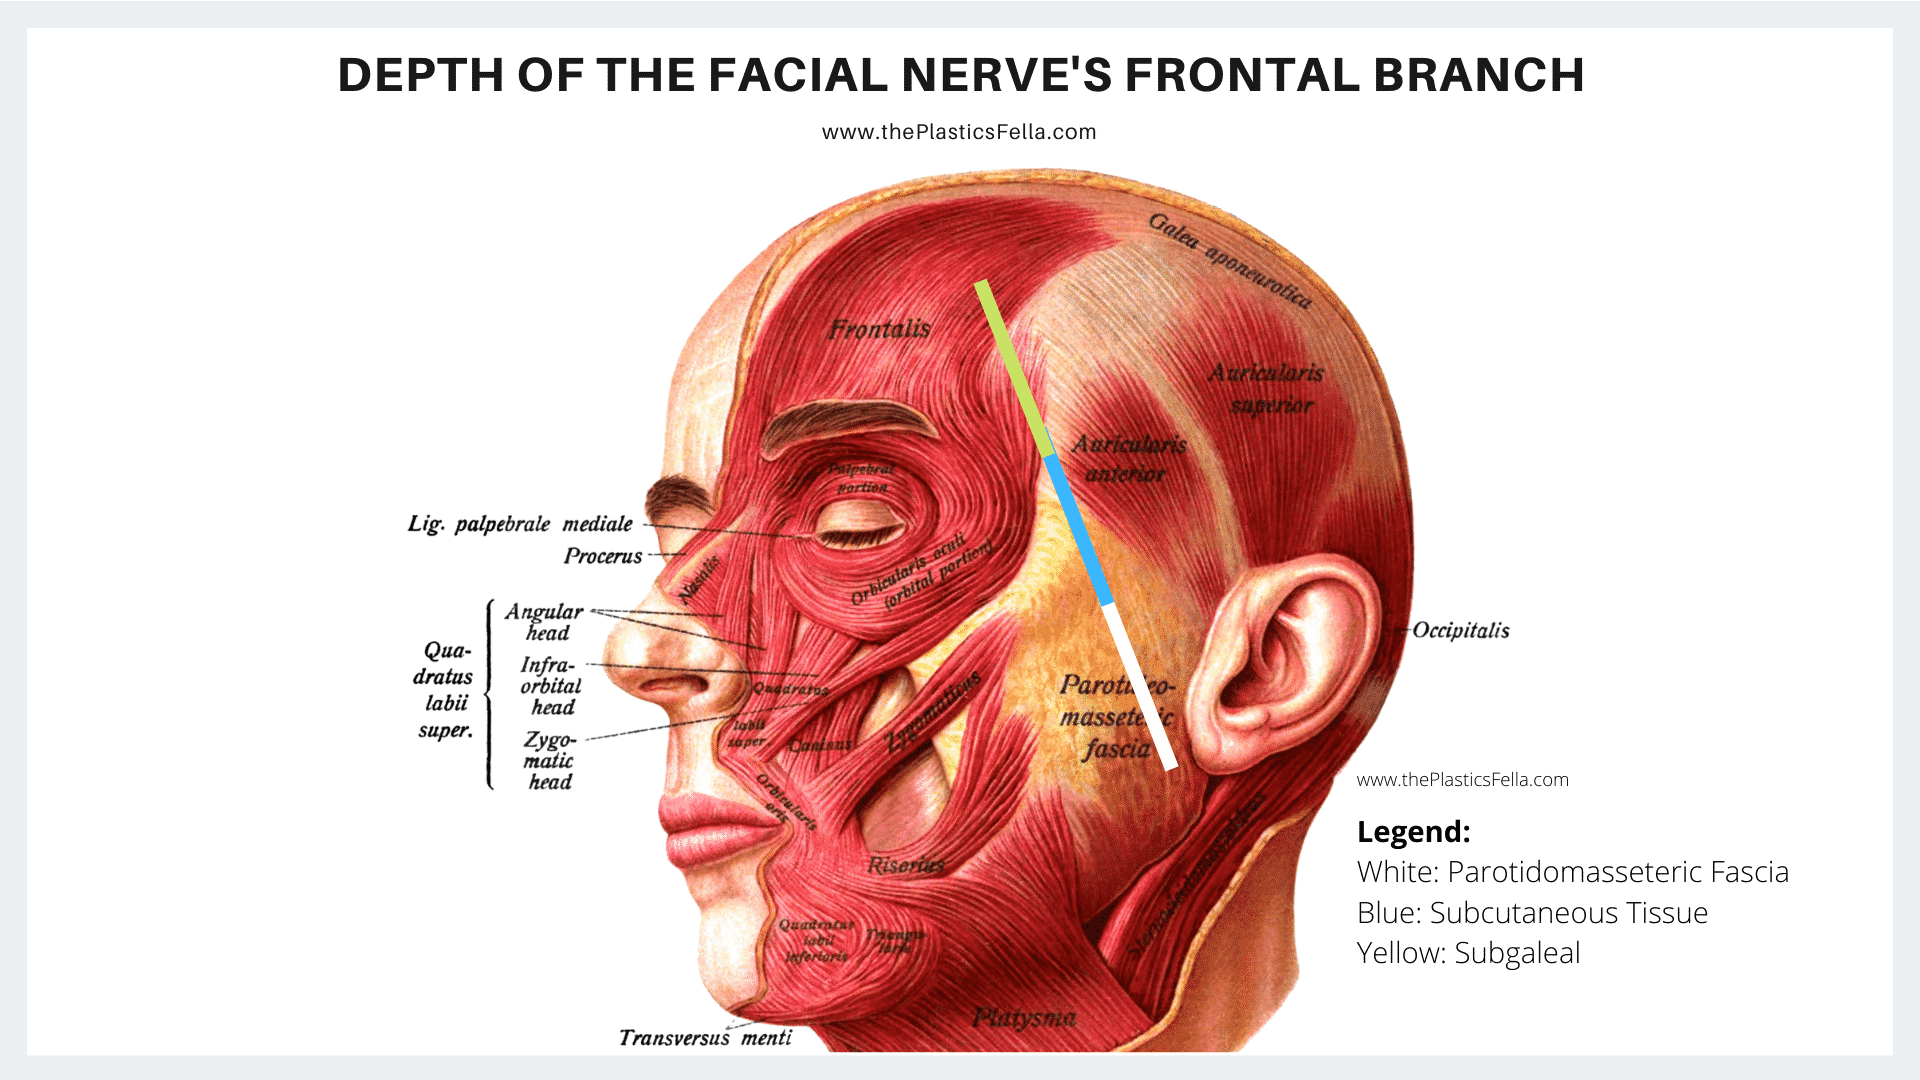 Depth and Layers of the Facial Nerve's Frontal/Temporal Branch through the parotidomasseteric fascia, subcutaneous tissue and subgaleal plan.